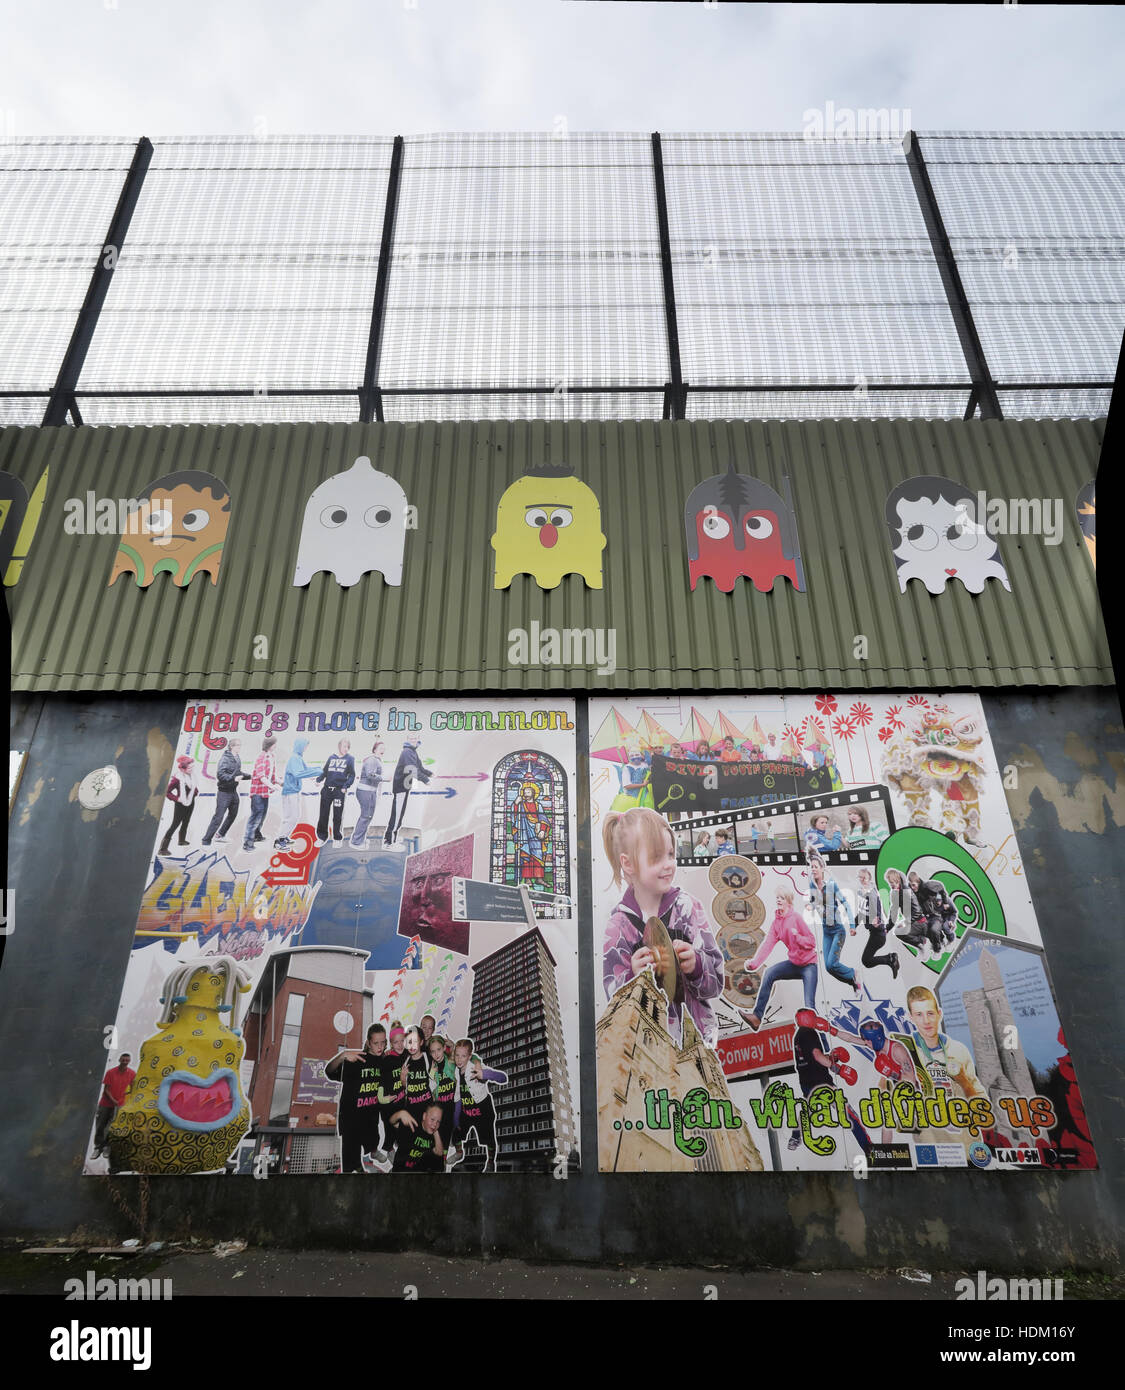 Northern Ireland,Peace,Wall,Cupar way,West Belfast,Belfast,Irish,art,artworks,artwork,common,than,divides,separates,us,peace,space invaders,space,invaders,wire,barbed,barbed wire,razor wire,invader,PacMan,Pac-man,Pac,man,Berlin wall,Theres more in common,Than what divides us,Irish history,GoTonySmith,@HotpixUK,Tony,Smith,UK,GB,Great,Britain,United,Kingdom,Irish,British,Ireland,problem,with,problem with,issue with,NI,Northern,Northern Ireland,Belfast,City,Centre,Art,Artists,the,troubles,The Troubles,Good Friday Agreement,Peace,honour,painting,wall,walls,tribute,Unionist,unionism,Protestant,Catholic,republican,Sinn Fein,community,Fight,Justice,West,Beal,feirste,martyrs,social,tour,tourism,tourists,urban,six,counties,6,backdrop,county,Antrim,UVF,DUP,British,GB,Empire,Buy Pictures of,Buy Images Of,Images of,Stock Images,Tony Smith,United Kingdom,Great Britain,British Isles,Belfast protestant community,Peoples army,Belfast catholic community,Irelands Berlin wall